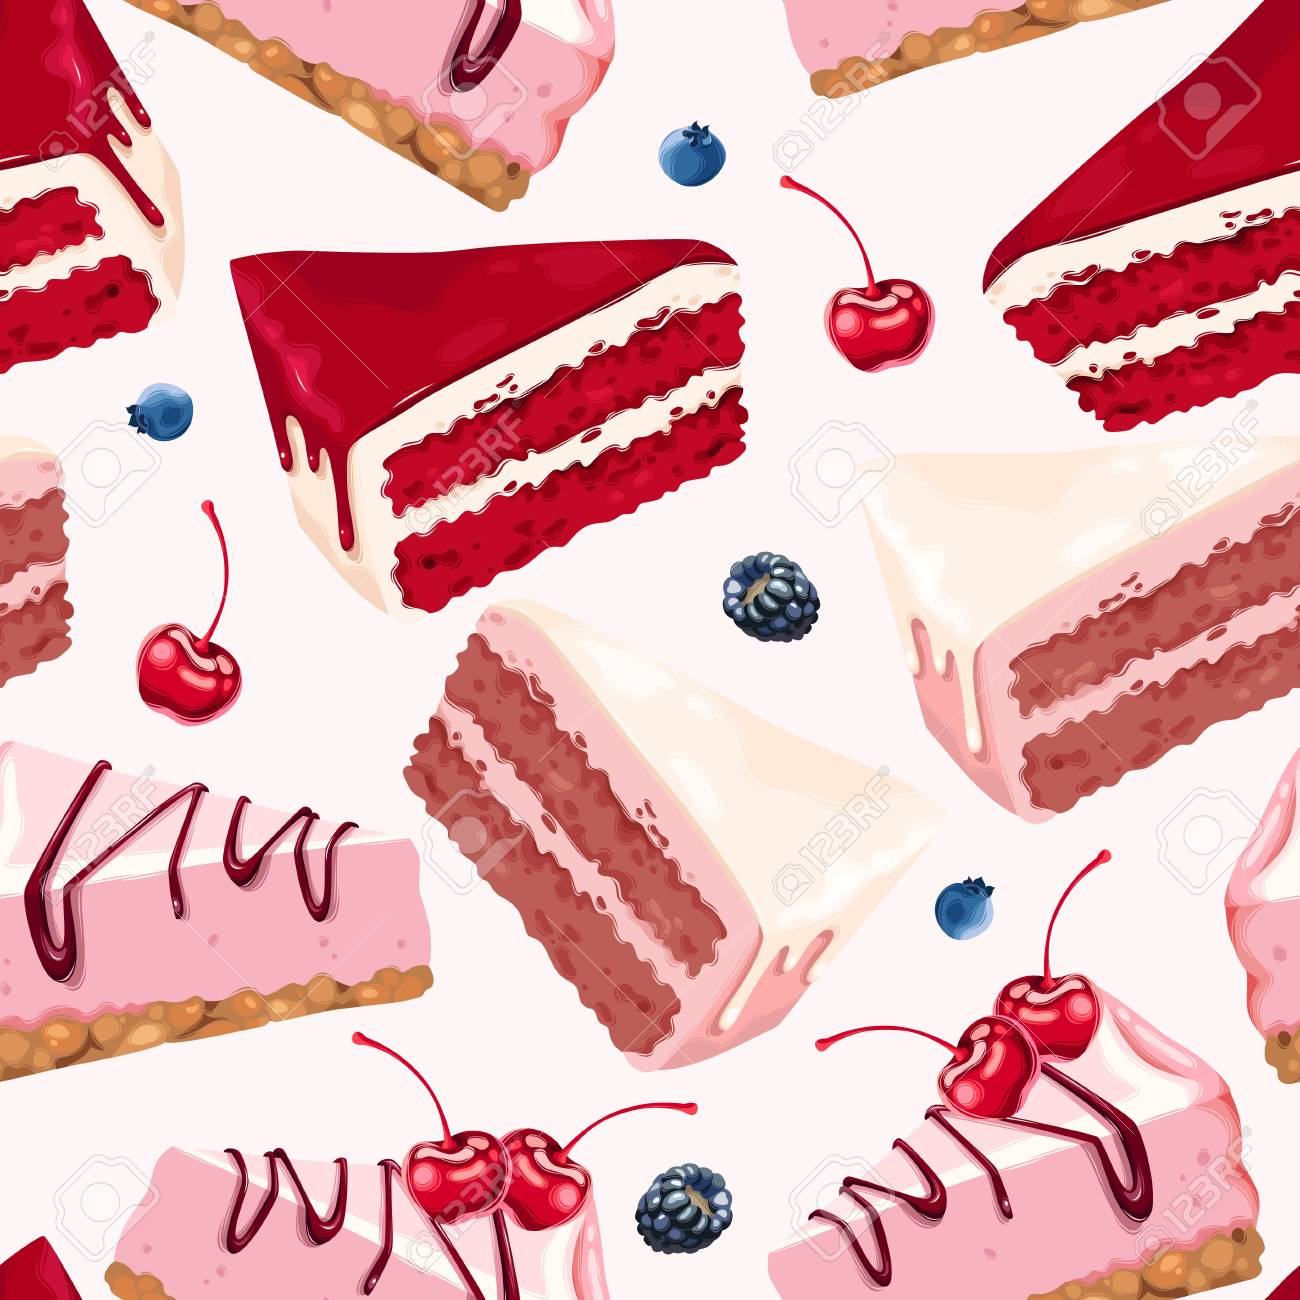 Vector seamless background with cakes - 89348000